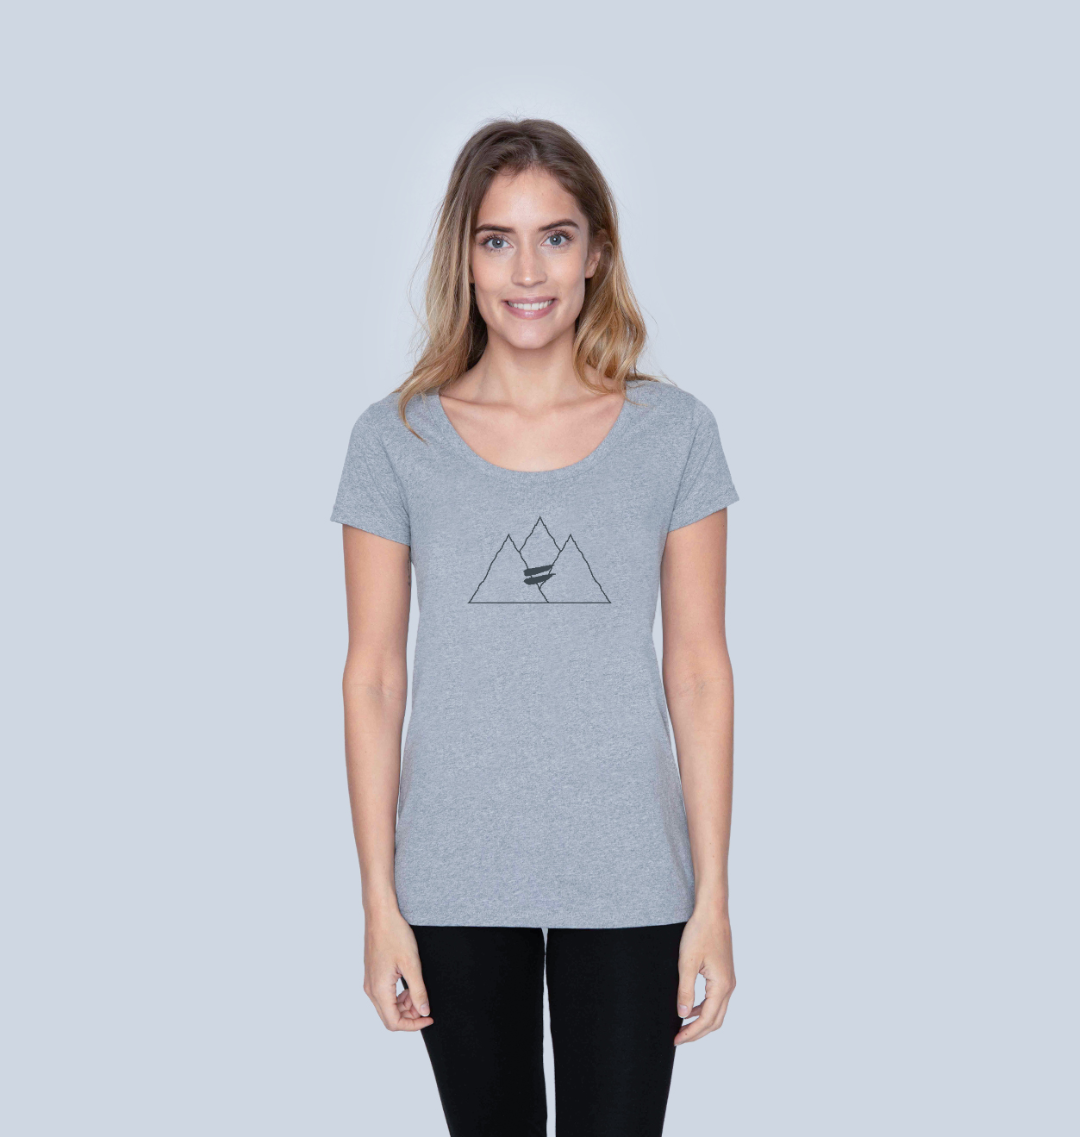 Summit Scoop Tee in Navy - Women's